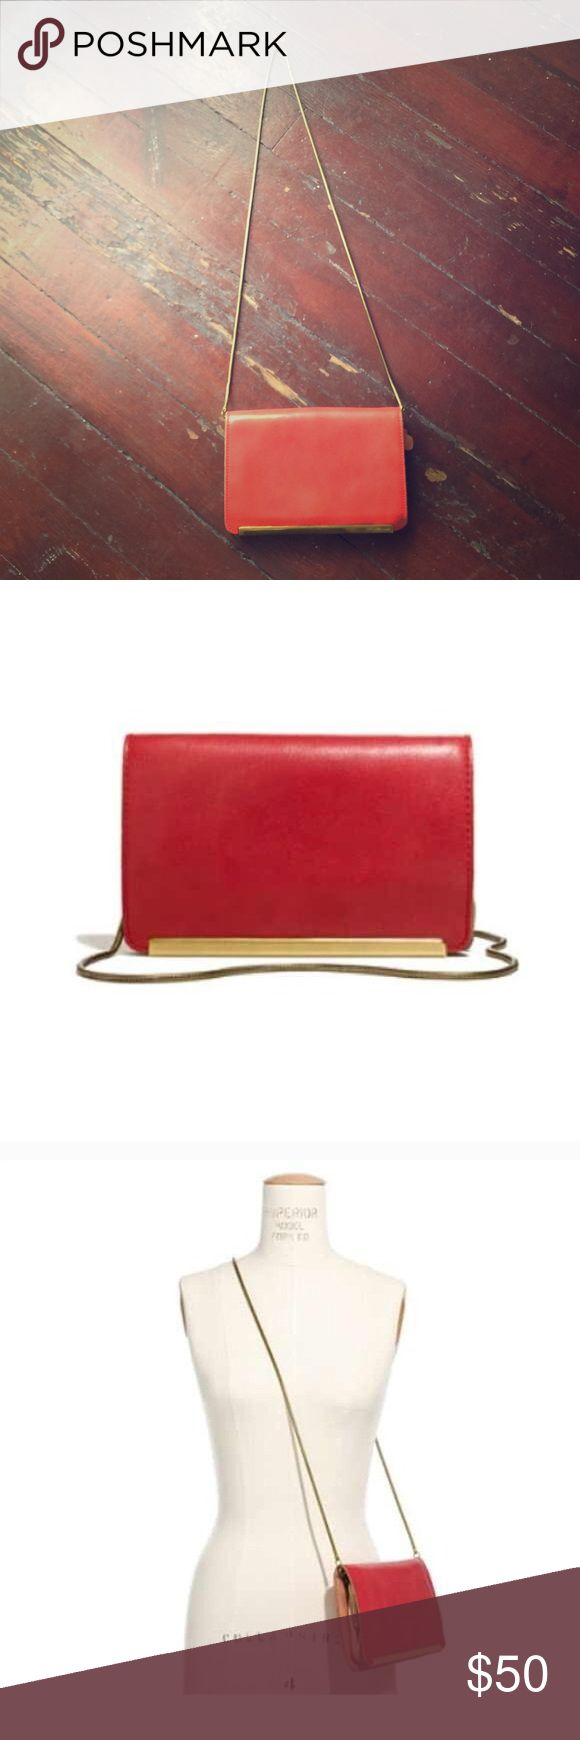 Red leather Madewell Clutch Sweet strawberry colored leather clutch from Madewell! Im not sure if I want to let this one go! Gold chain can be removed. Great condition, timeless. Madewell Bags Clutches & Wristlets